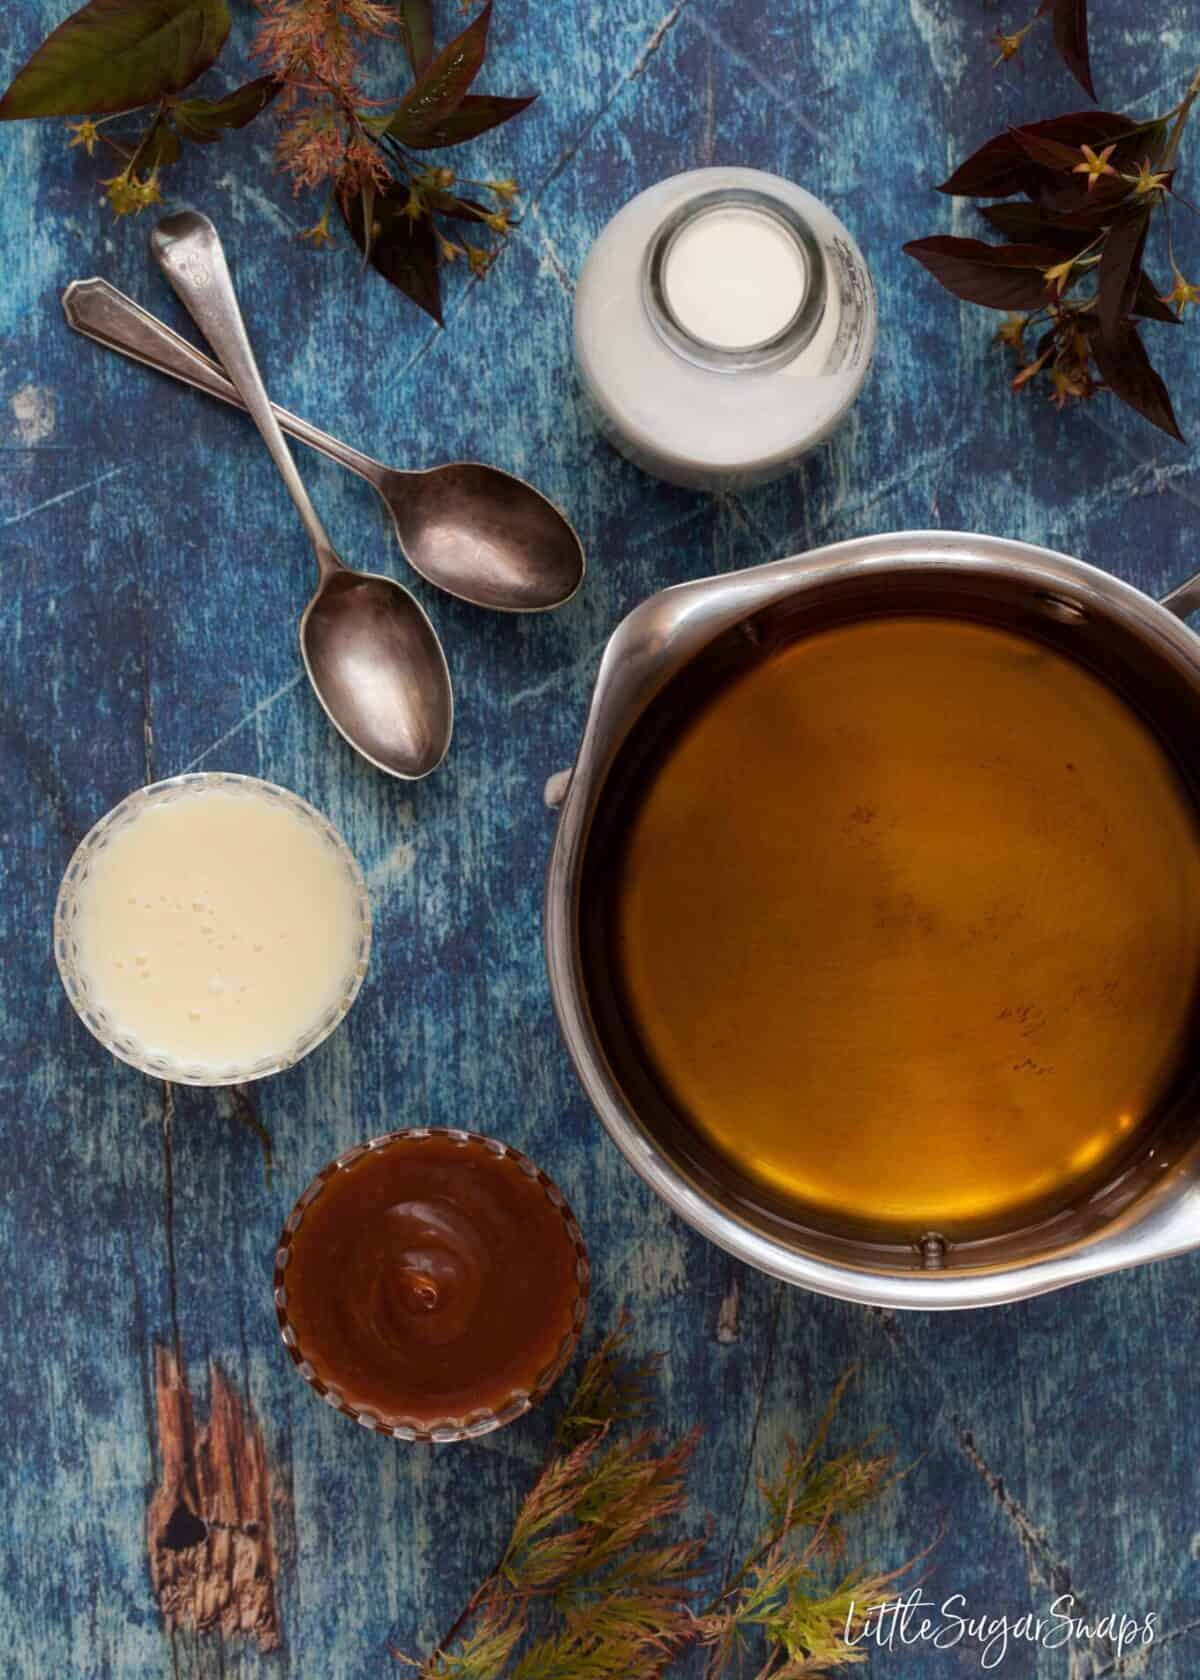 borubon in a pan ready to be mixed with cream, condensed milk and caramel sauce with vintage spoons on a blue surface